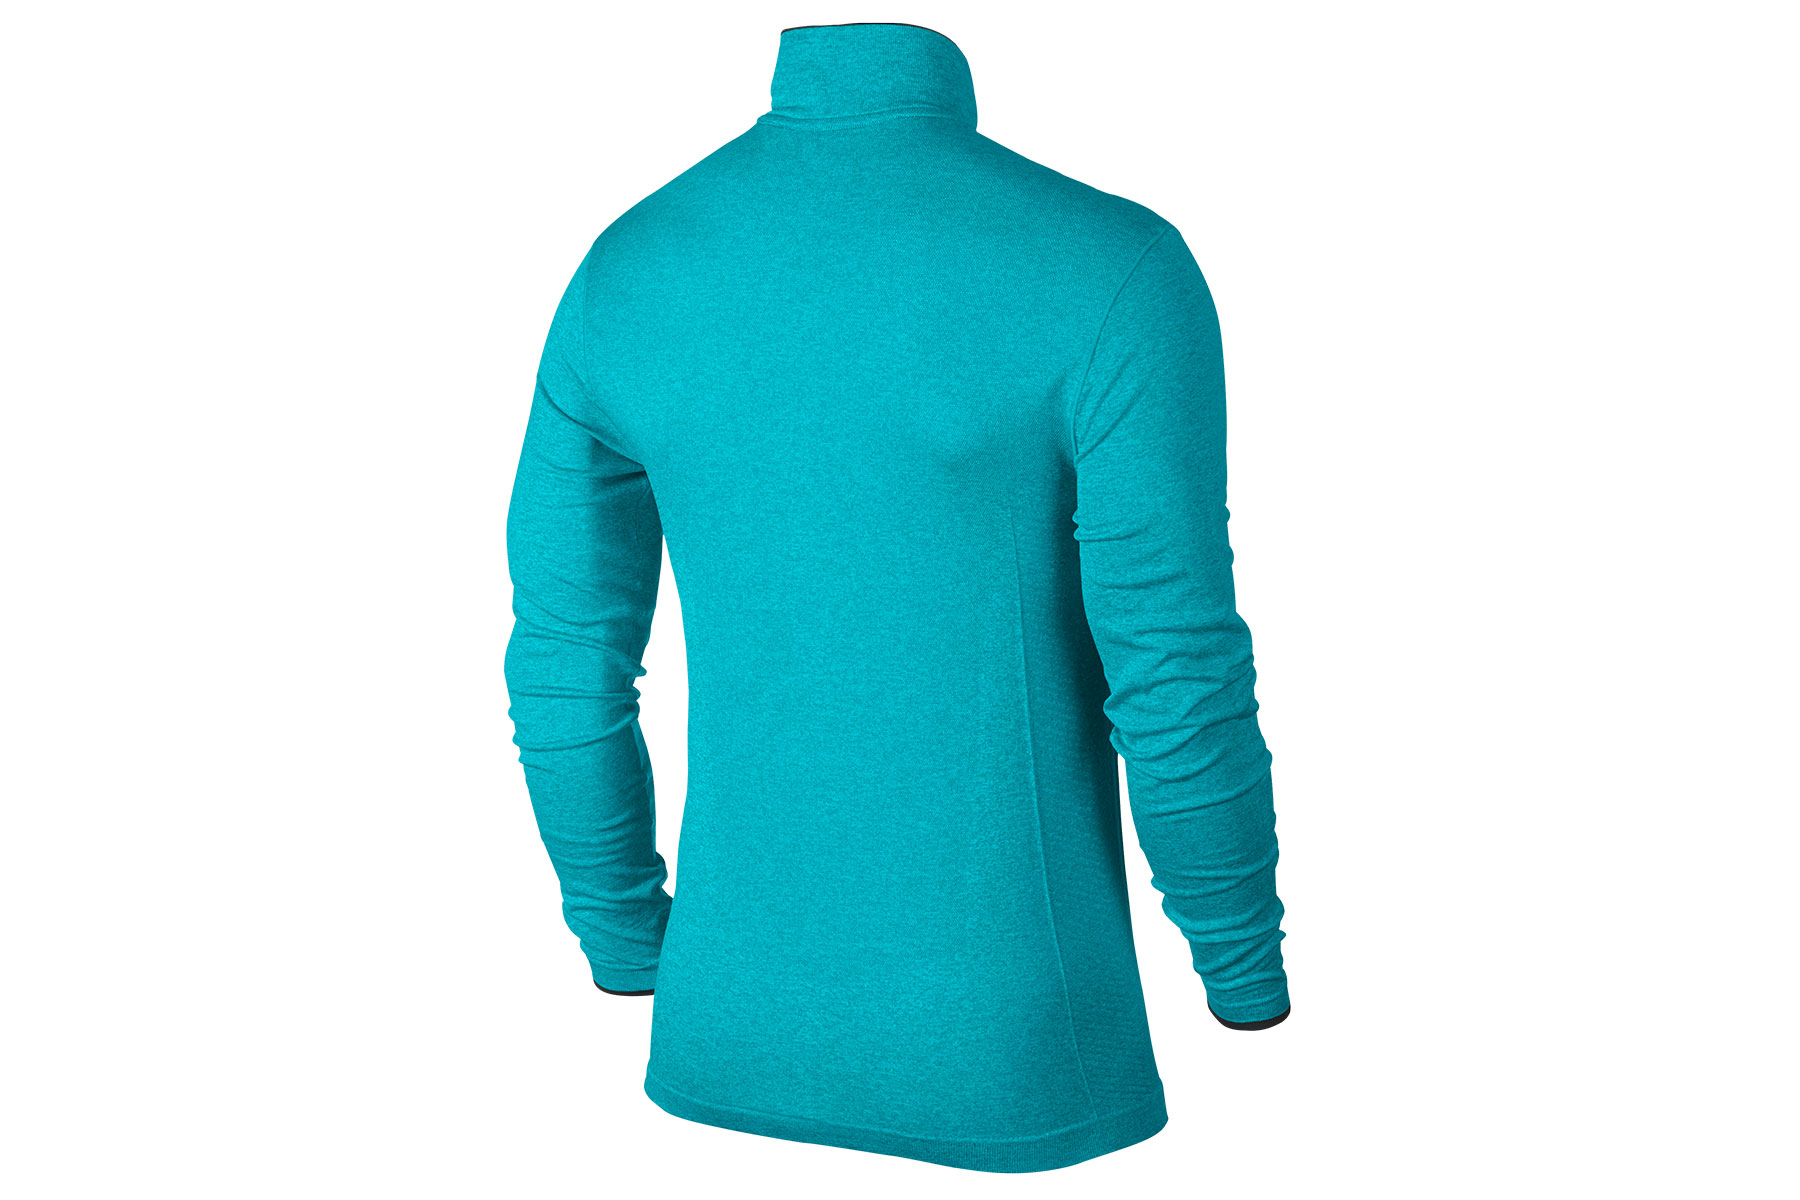 Knitting Patterns For Golf Jumpers : Nike Golf Dri-Fit Knit Zip Sweater Online Golf